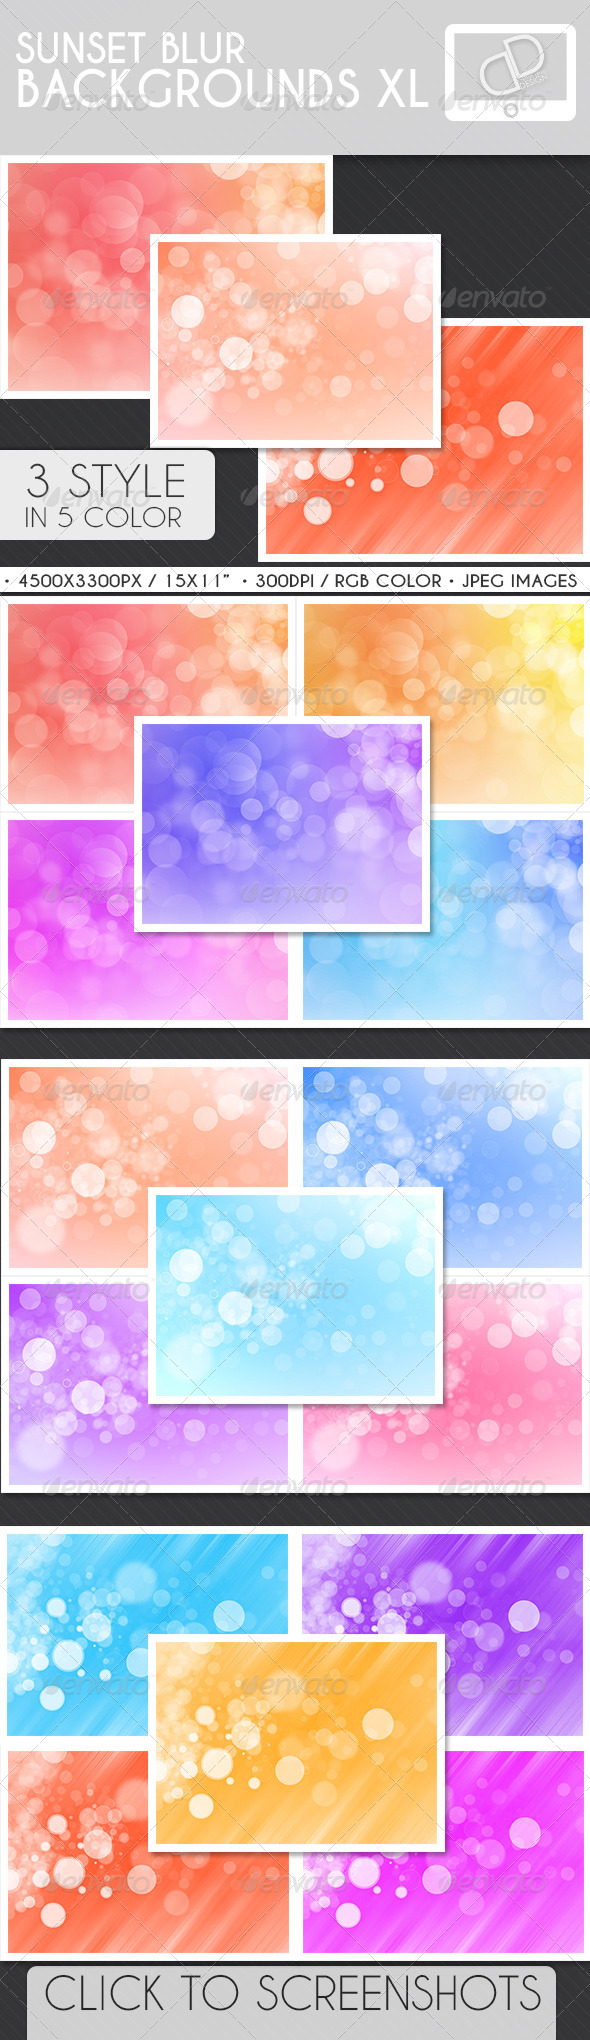 Sunset Blur Backgrounds - Backgrounds Graphics